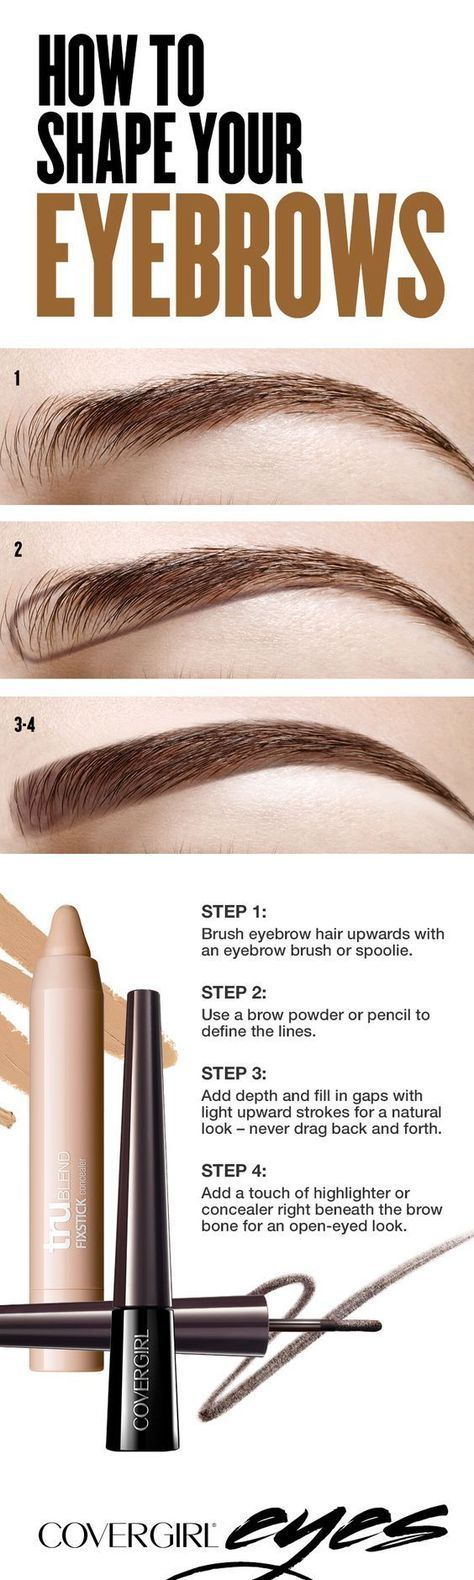 Filling in your eyebrows doesn't have to be a lengthy process. Keep it simple by using a brow powder or pencil to define a bottom line, and then smudge upwards and blend. Easy, Step By Step Makeup Ideas and Tutorials for Everyday Natural Looks. Colorful and Elegant Simple Ideas For Brown Eyes, For Blue Eyes, For Prom, For Teens, For School, and Even For Wedding. Tips For Contouring, Eyeshadows, and Eyeliner.